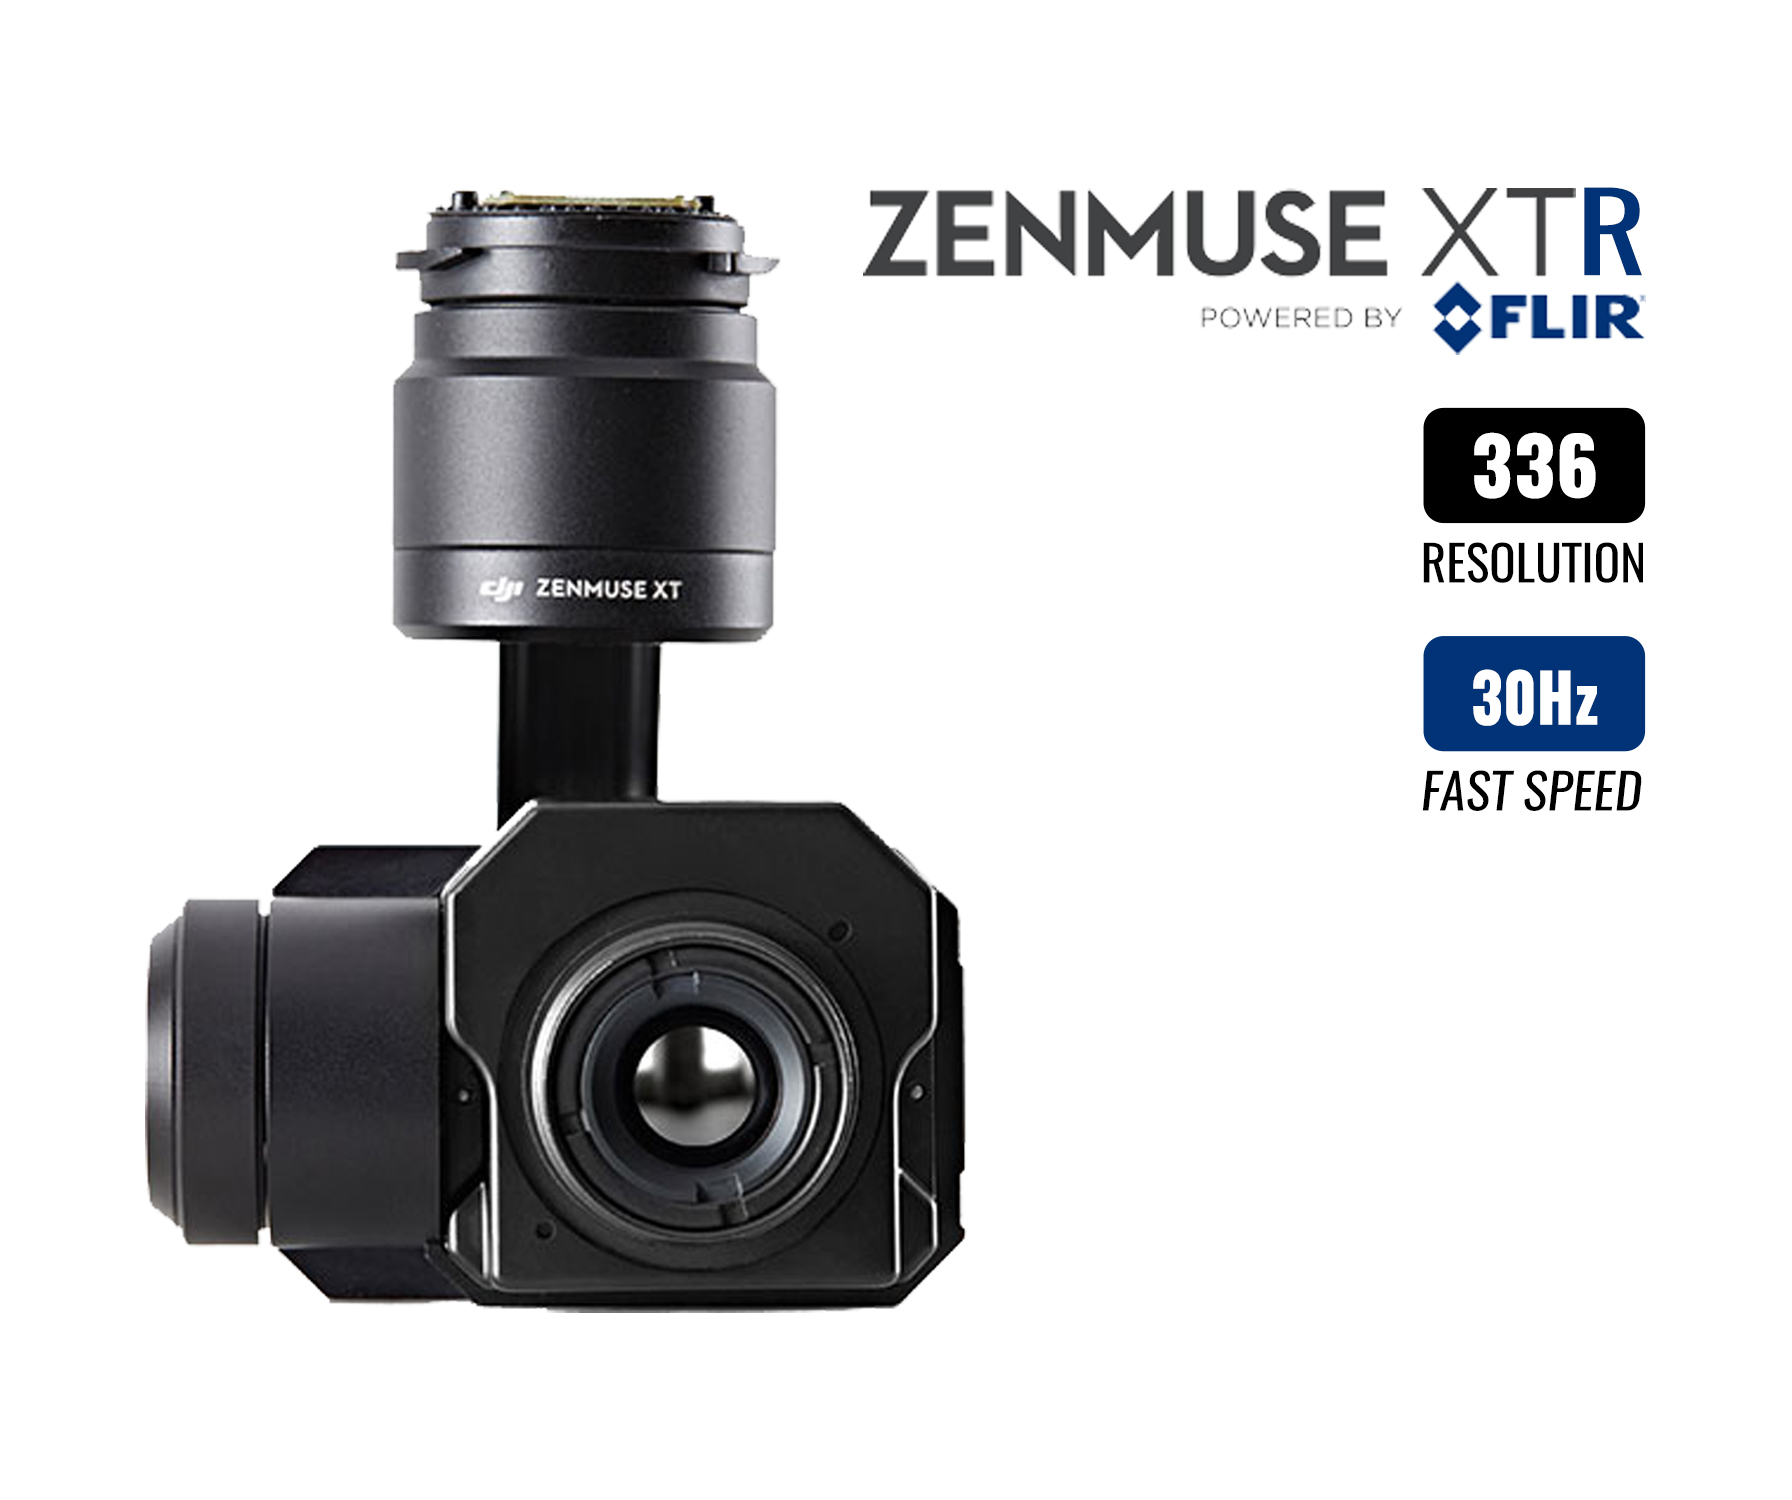 dji zenmuse xtr 336x256 30hz fast lens flir tau 2 thermal. Black Bedroom Furniture Sets. Home Design Ideas